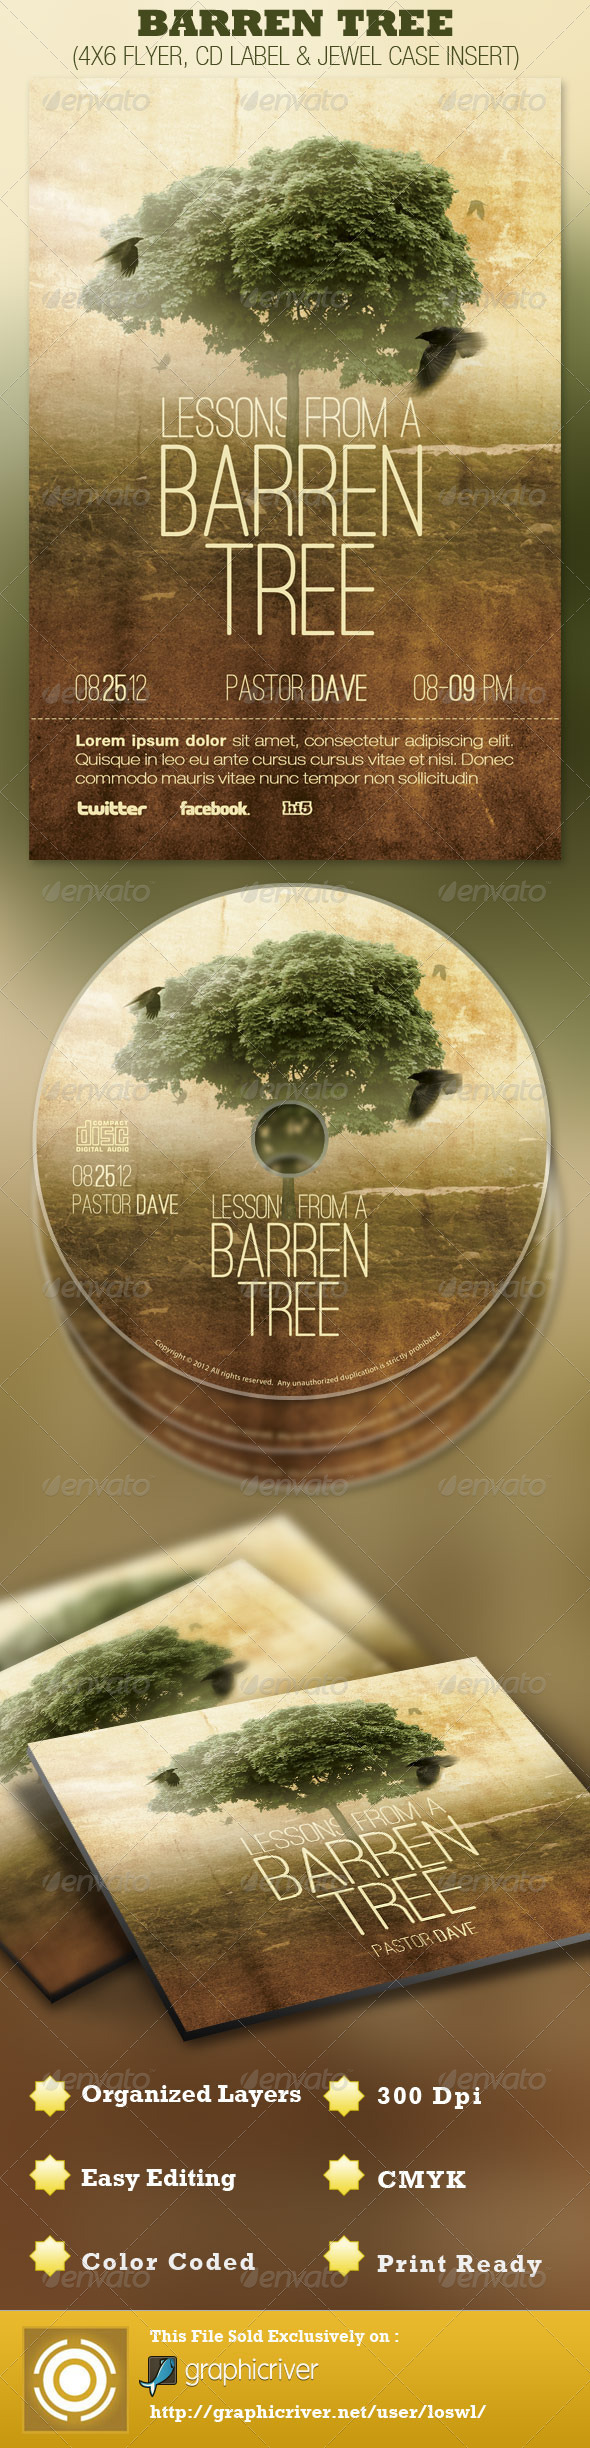 Barren Tree Church Flyer and CD Template - Church Flyers